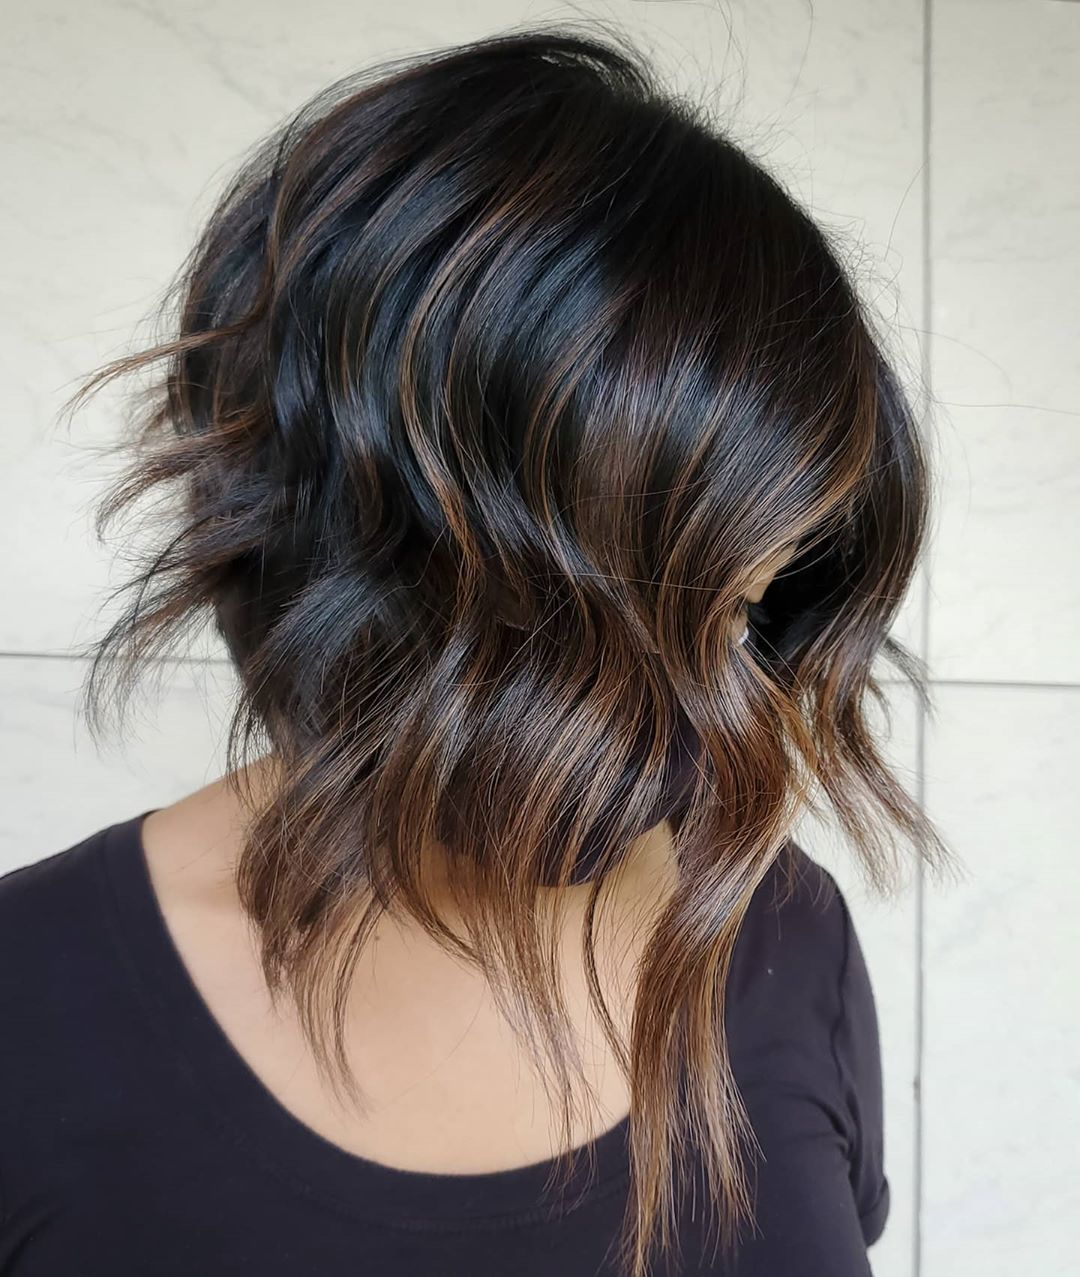 Inverted Lob with Shaggy Layers